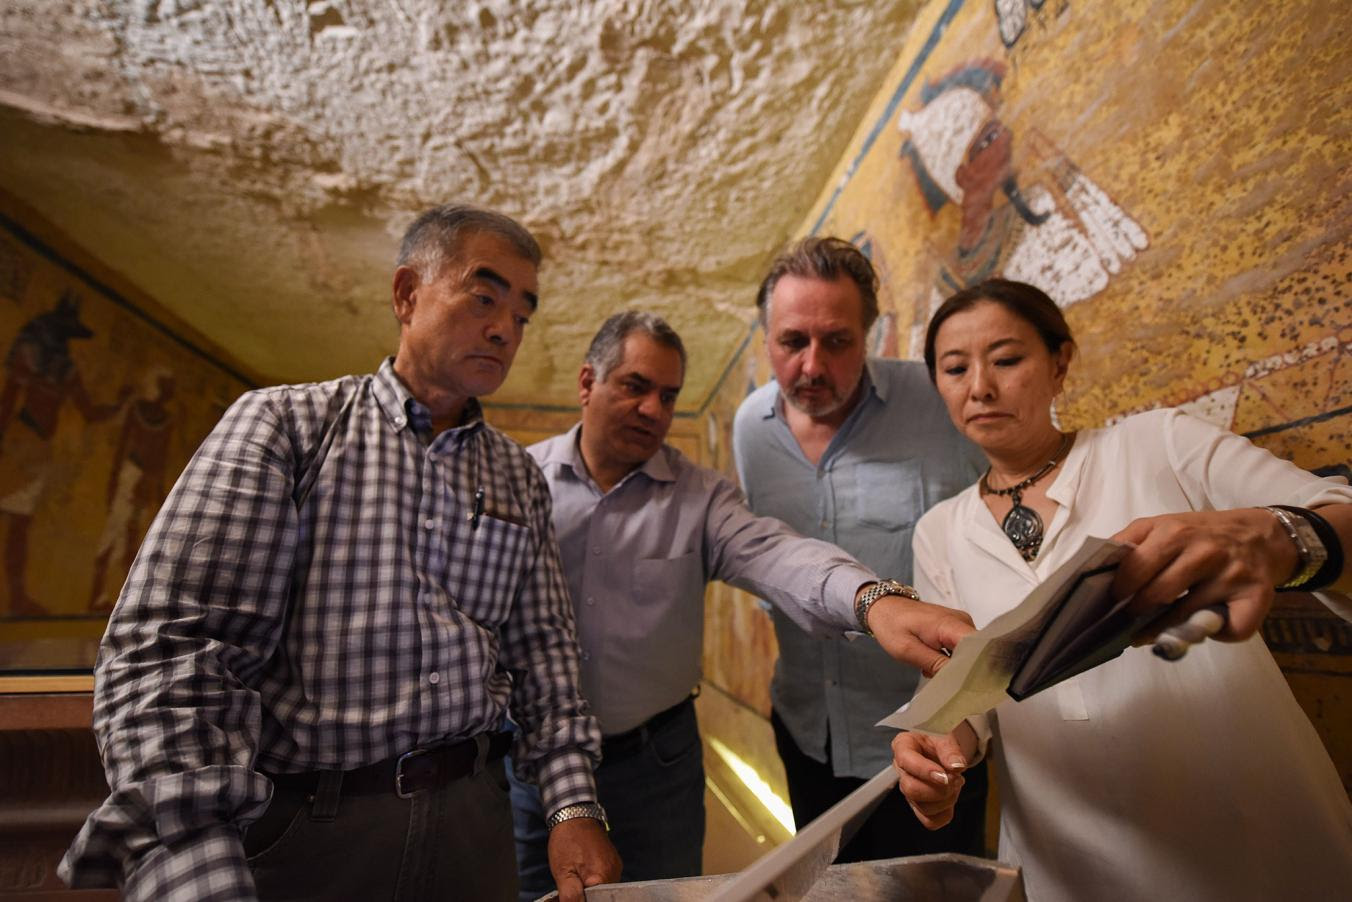 Hirokatsu Watanabe, Mamdouh Eldamaty, the Egyptian antiquities minister, and archaeologists Nicholas Reeves and Yumiko Ueno study an image of a painted wall scene. PHOTO: Brando Quilici, National Geographic